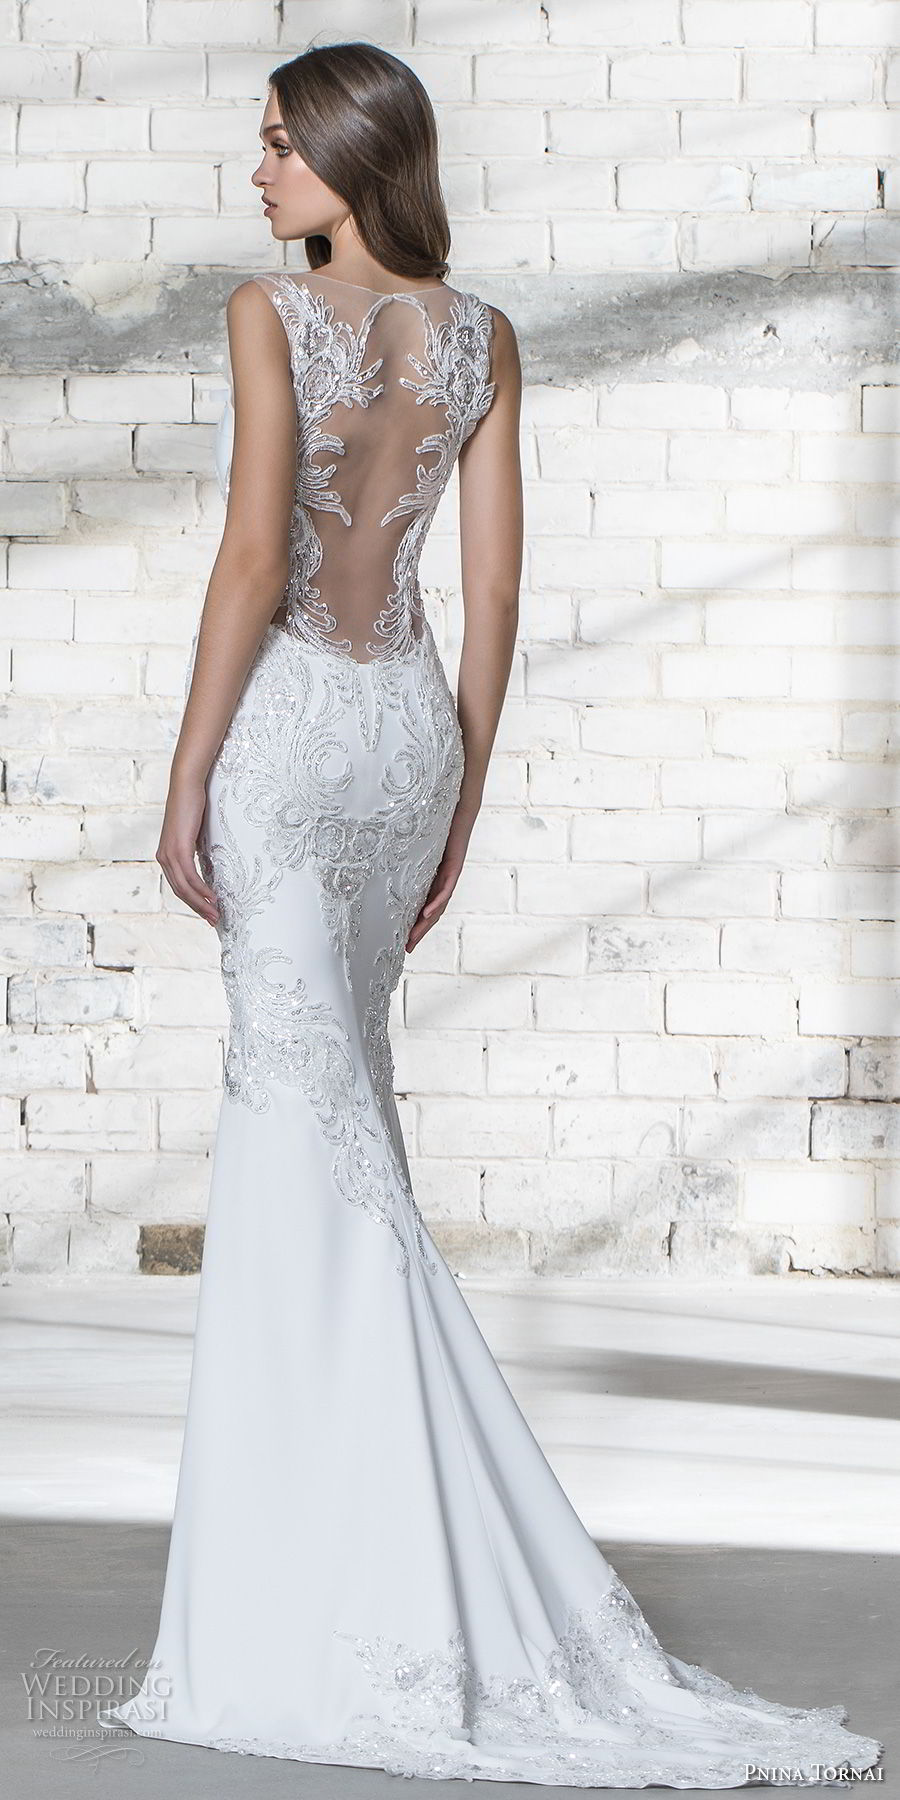 pnina tornai 2019 love bridal strapless deep plunging sweetheart neckline heavily embellished bodice glitzy romantic elegant sheath wedding dress sheer lace back chapel train (1) bv